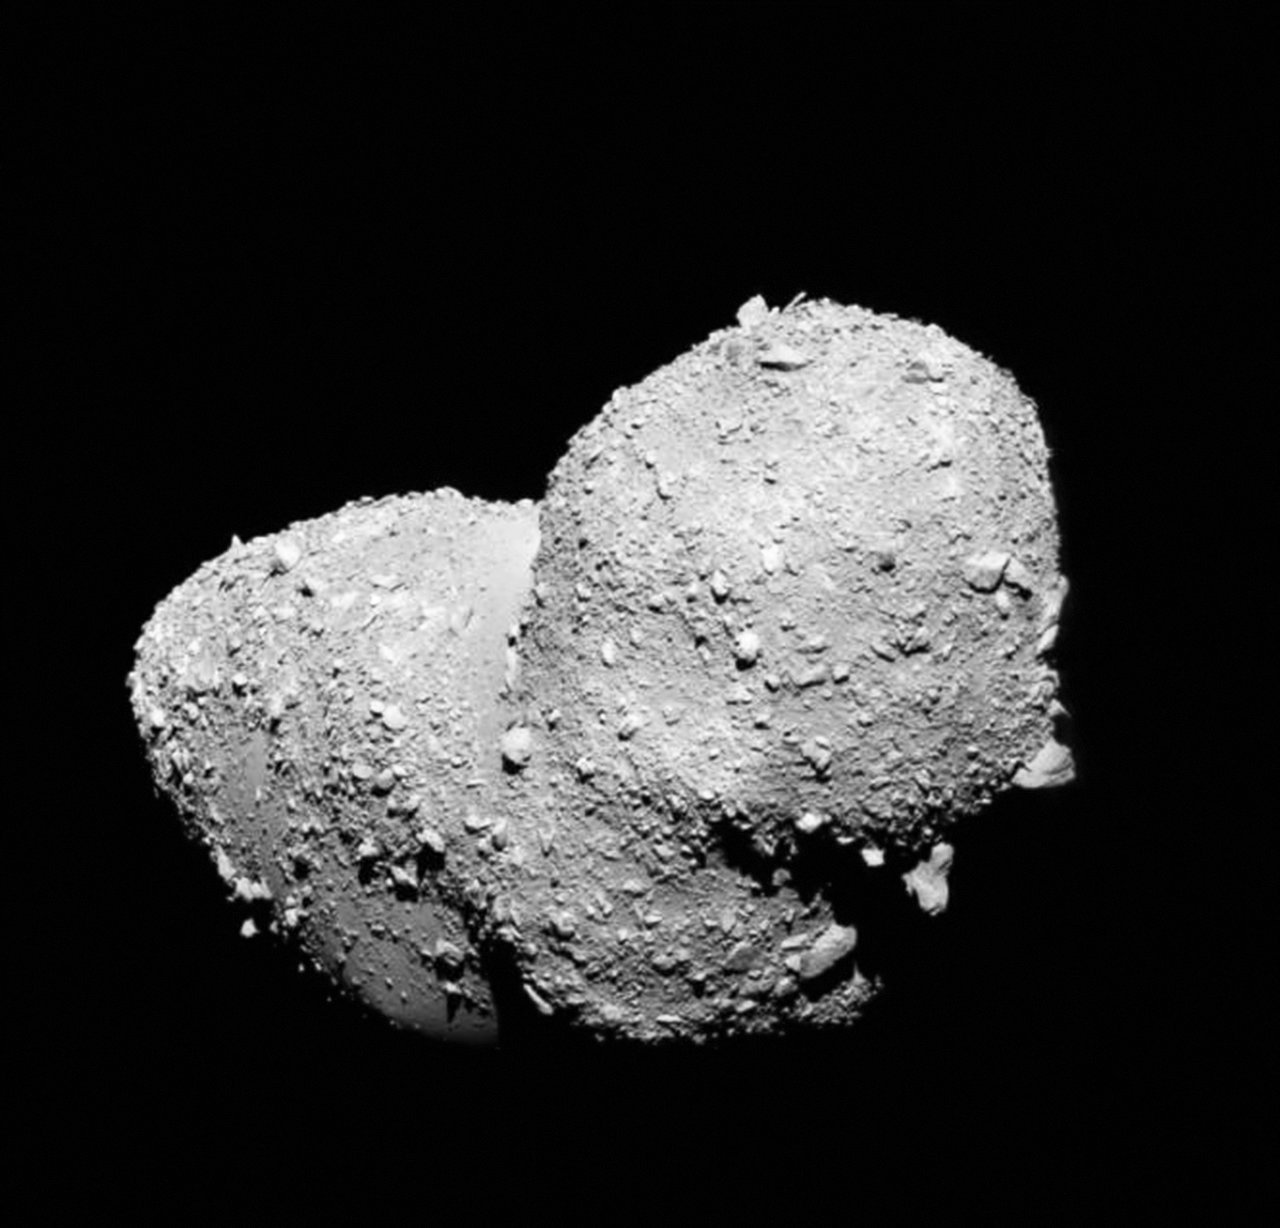 A Japanese space probe is set to land on the asteroid Itokawa in early October. College of DuPage Astronomy professor Joe DalSanto discusses why this piece of rock could say a lot about the early Solar System.